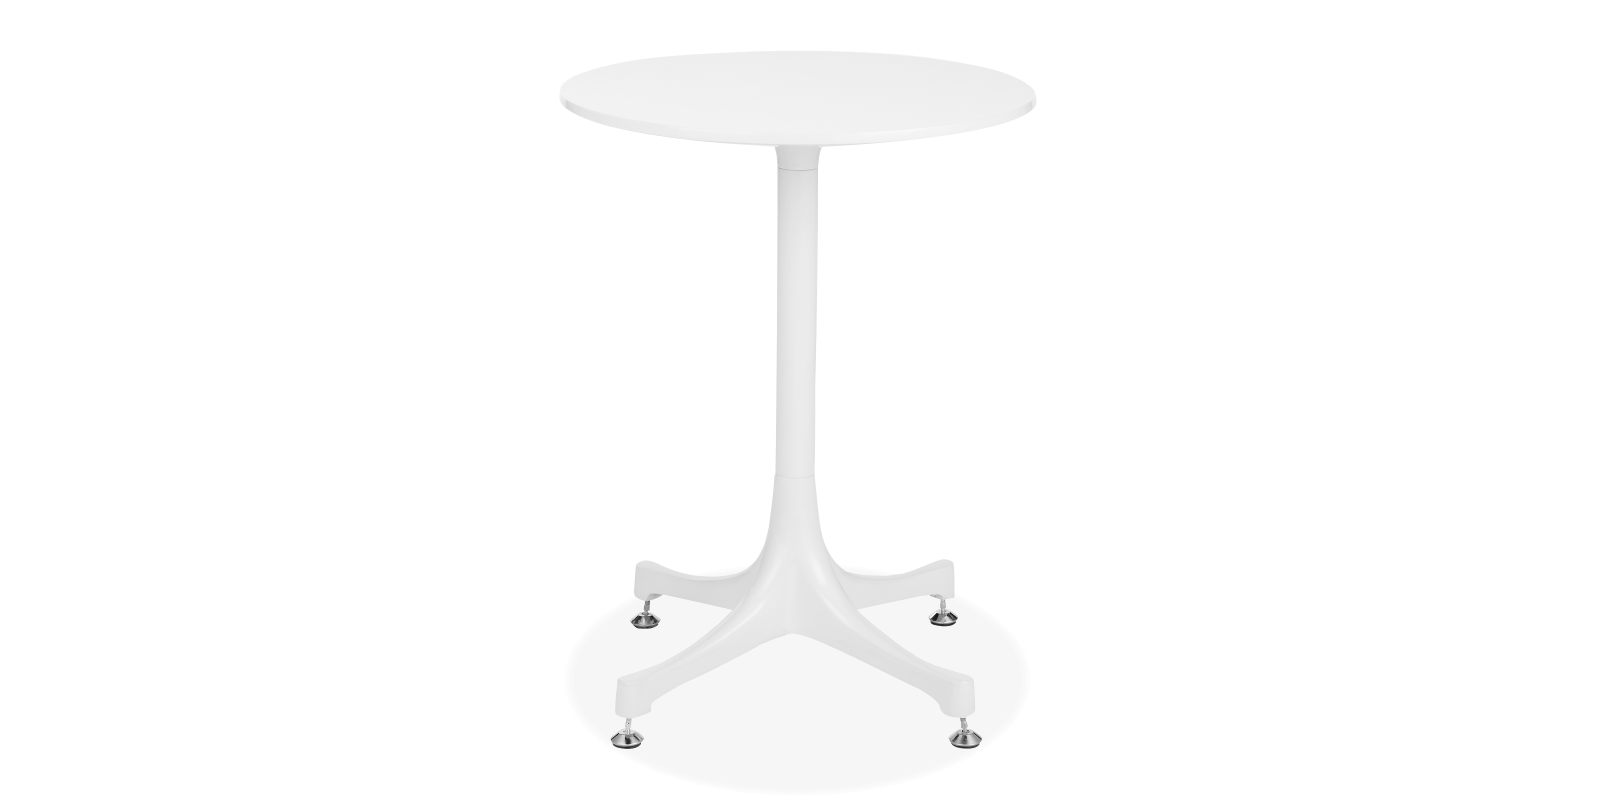 Grab the Best Deal by Buying Designer Side Tables